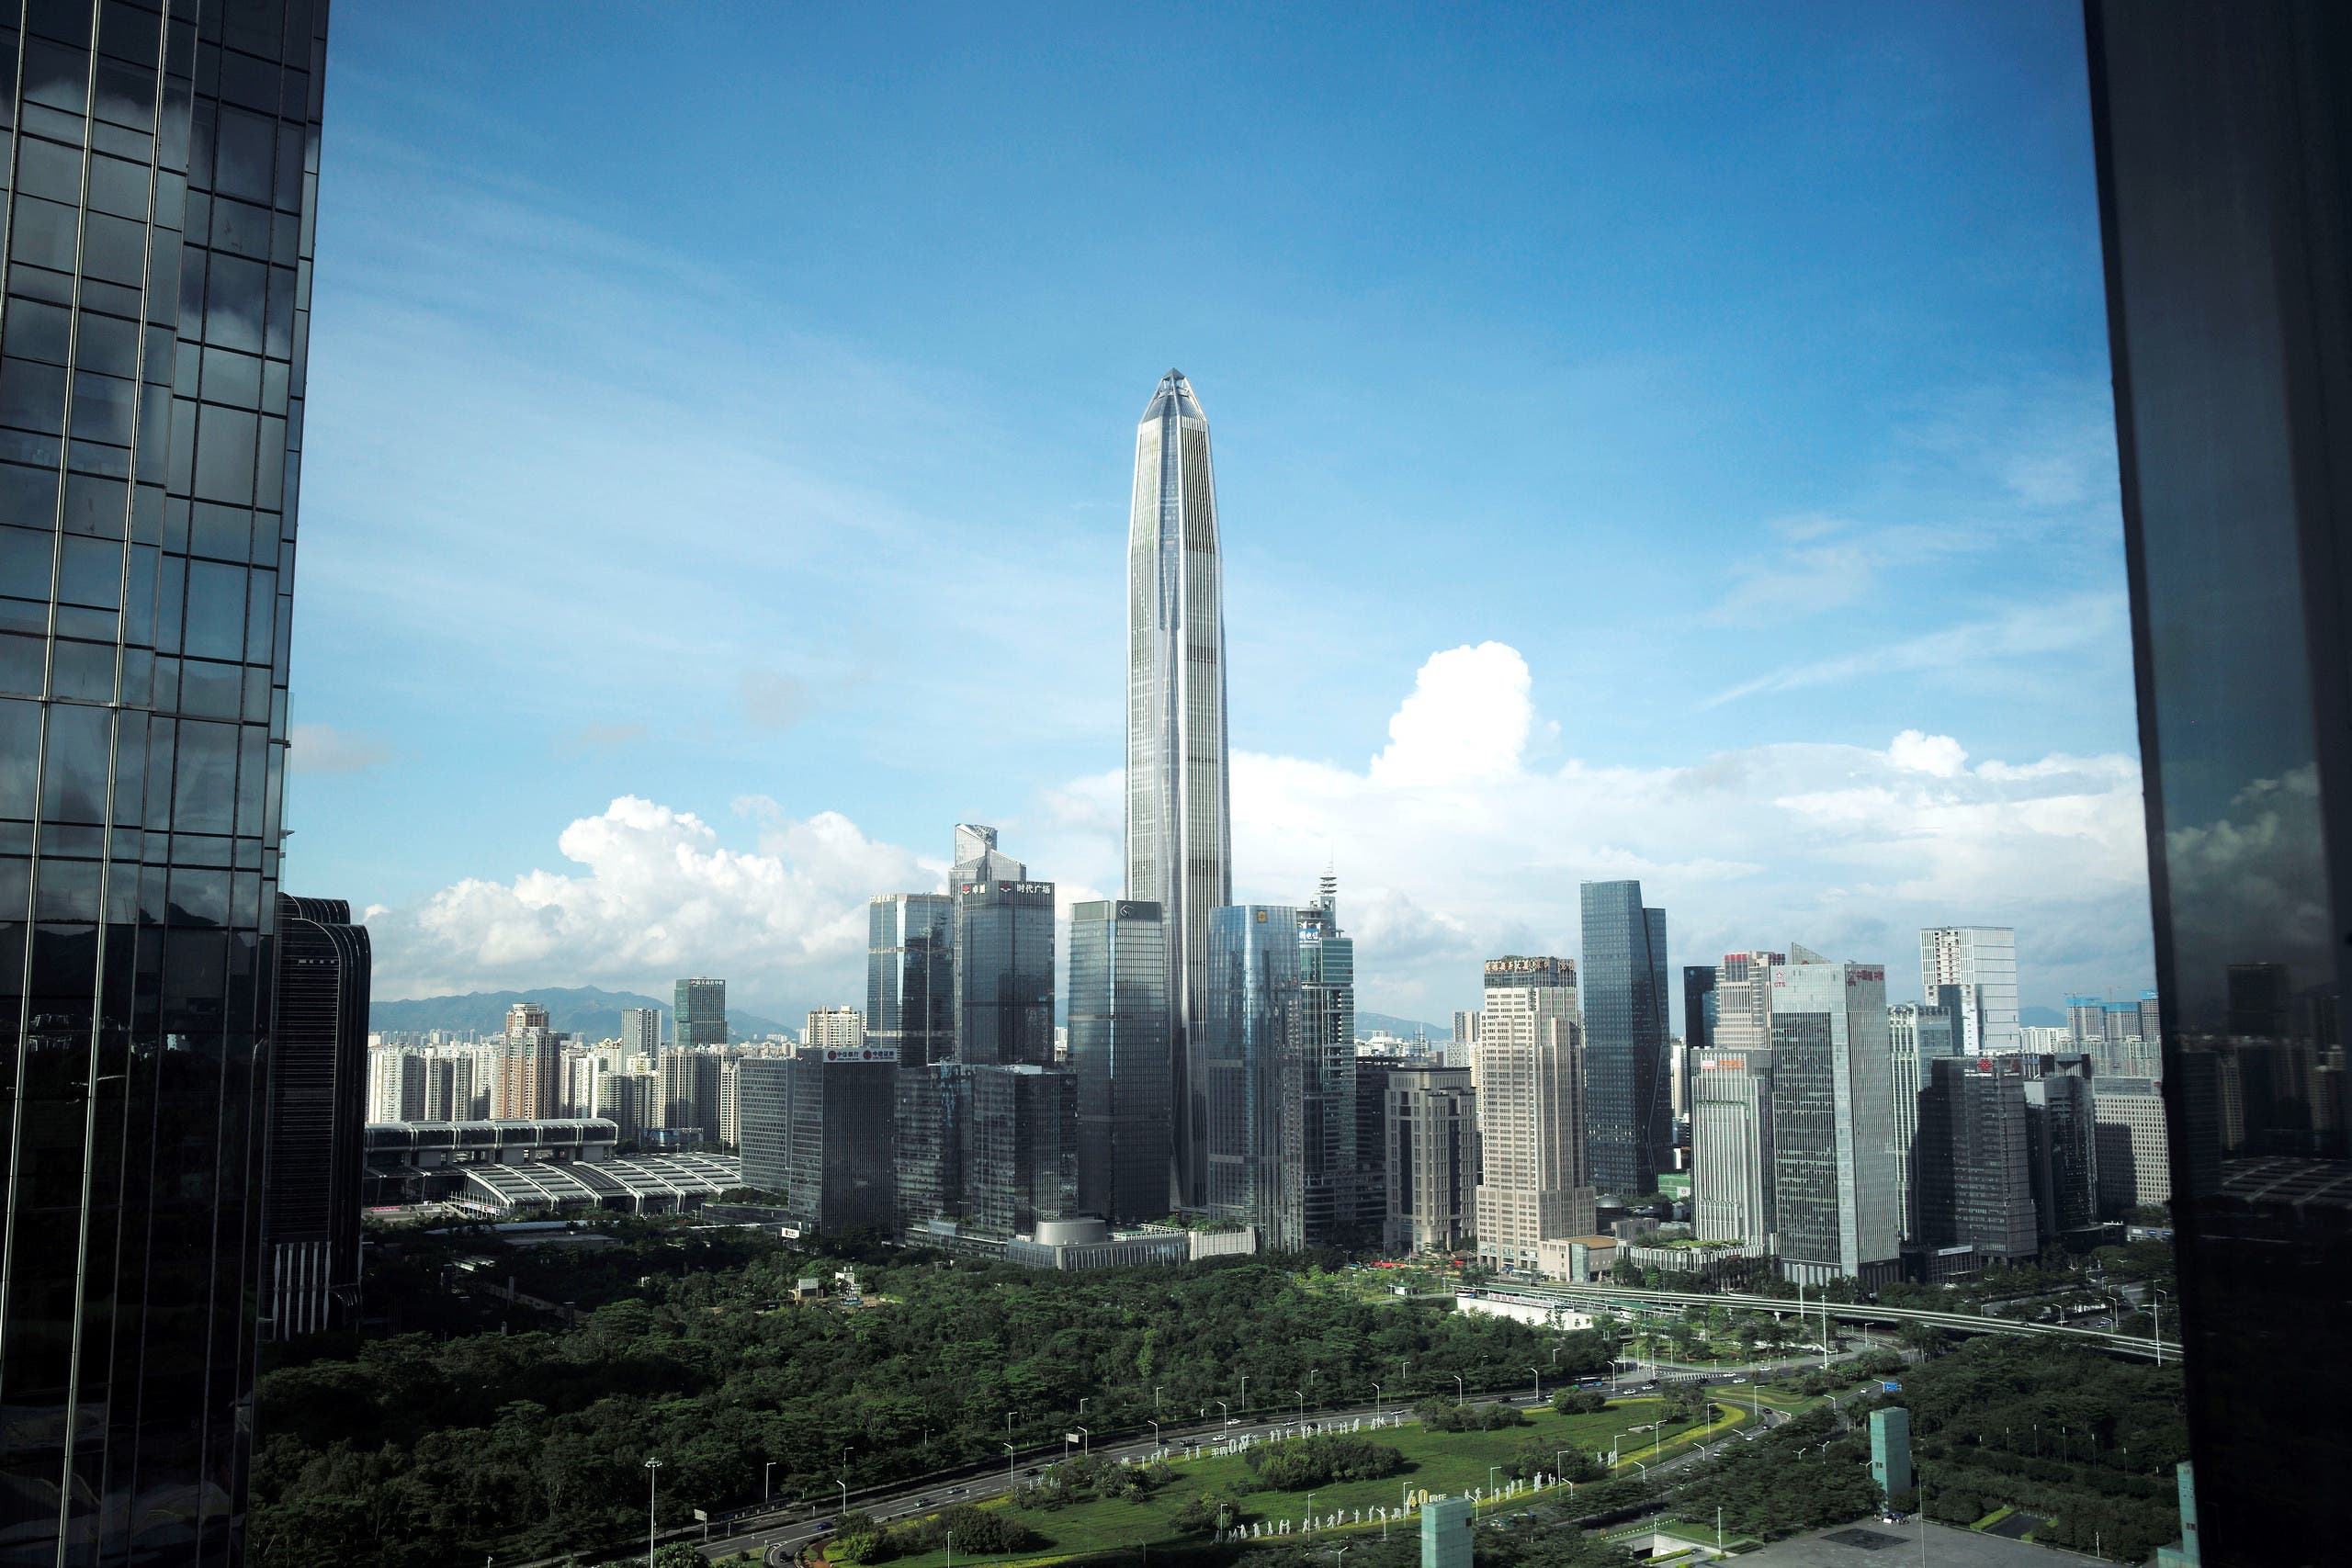 The skyscraper Ping An Finance Centre is seen amid other buildings in the central business district of Futian in Shenzhen, Guangdong province, China June 18, 2019. (Reuters)